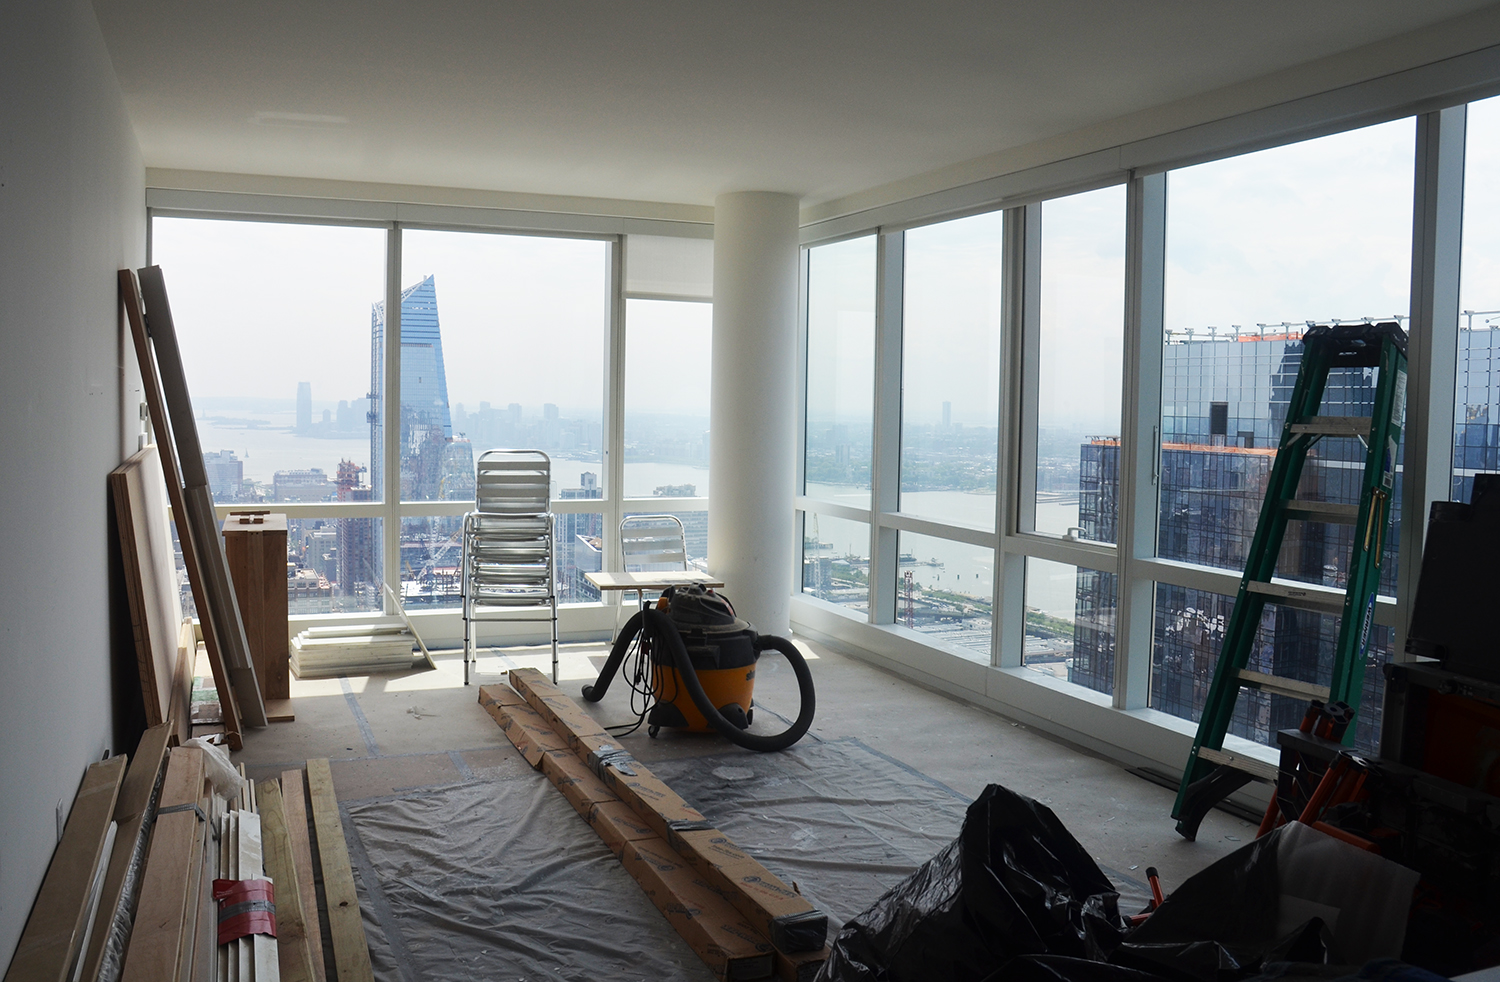 Southwest corner under renovation on the 62nd floor of Manhattan View at MiMA